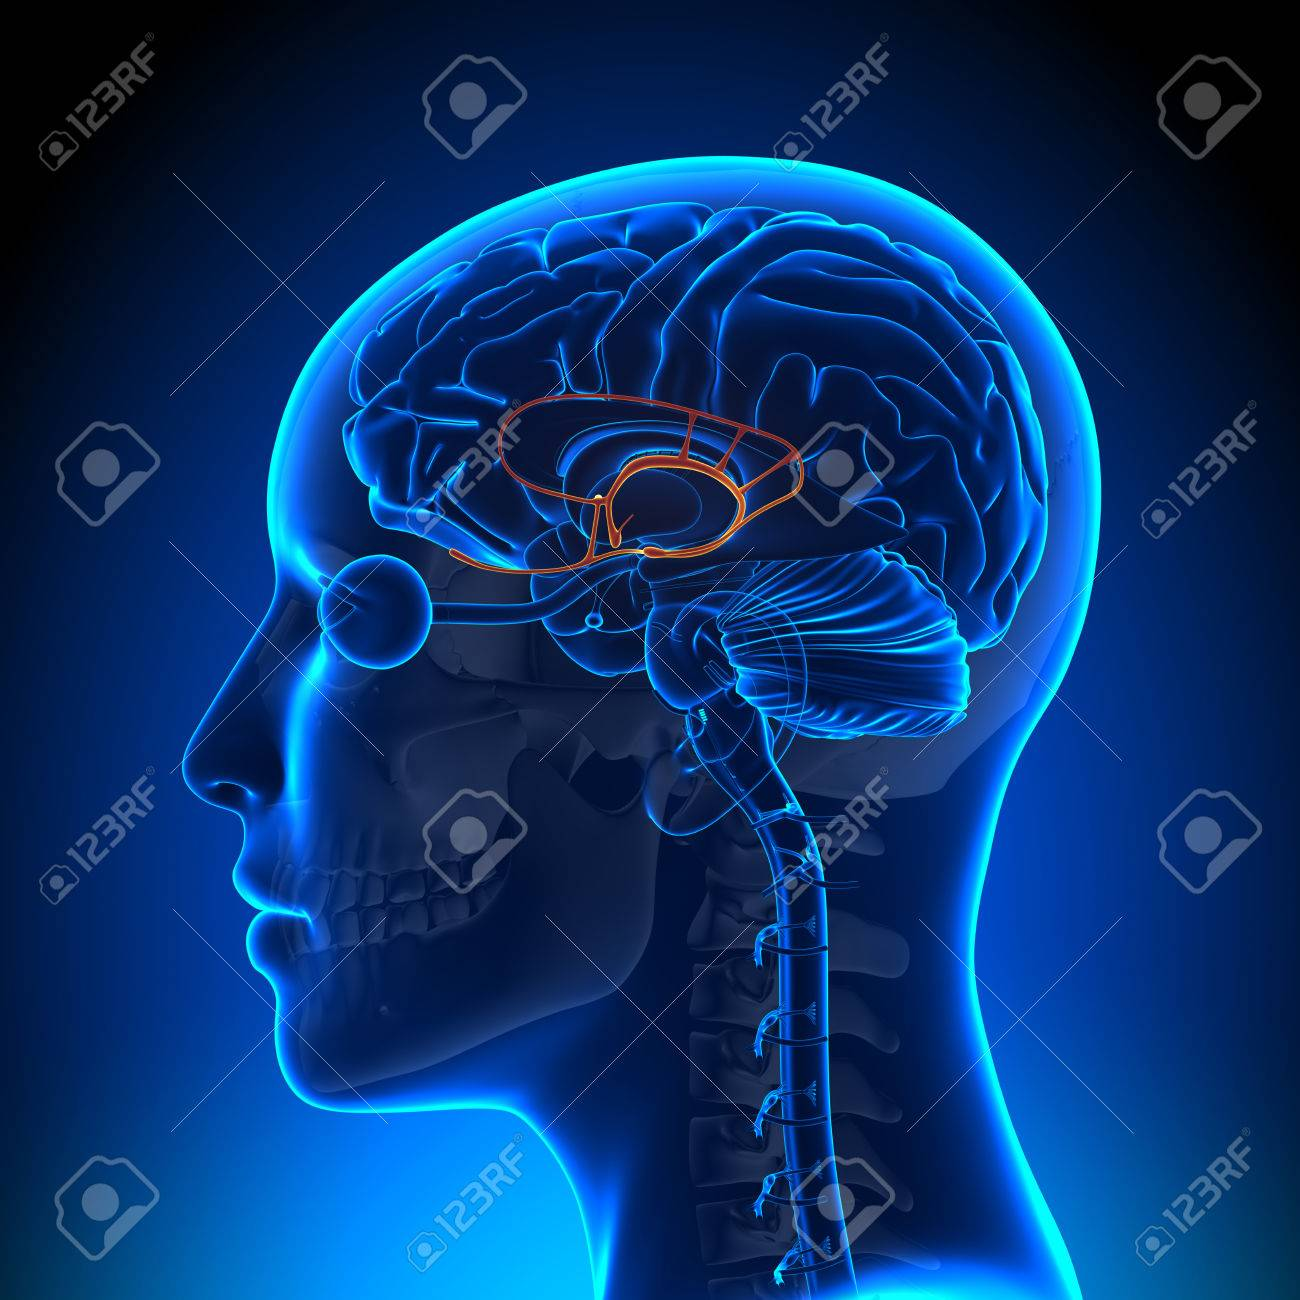 Female Limbic System - Anatomy Brain Stock Photo, Picture And ...